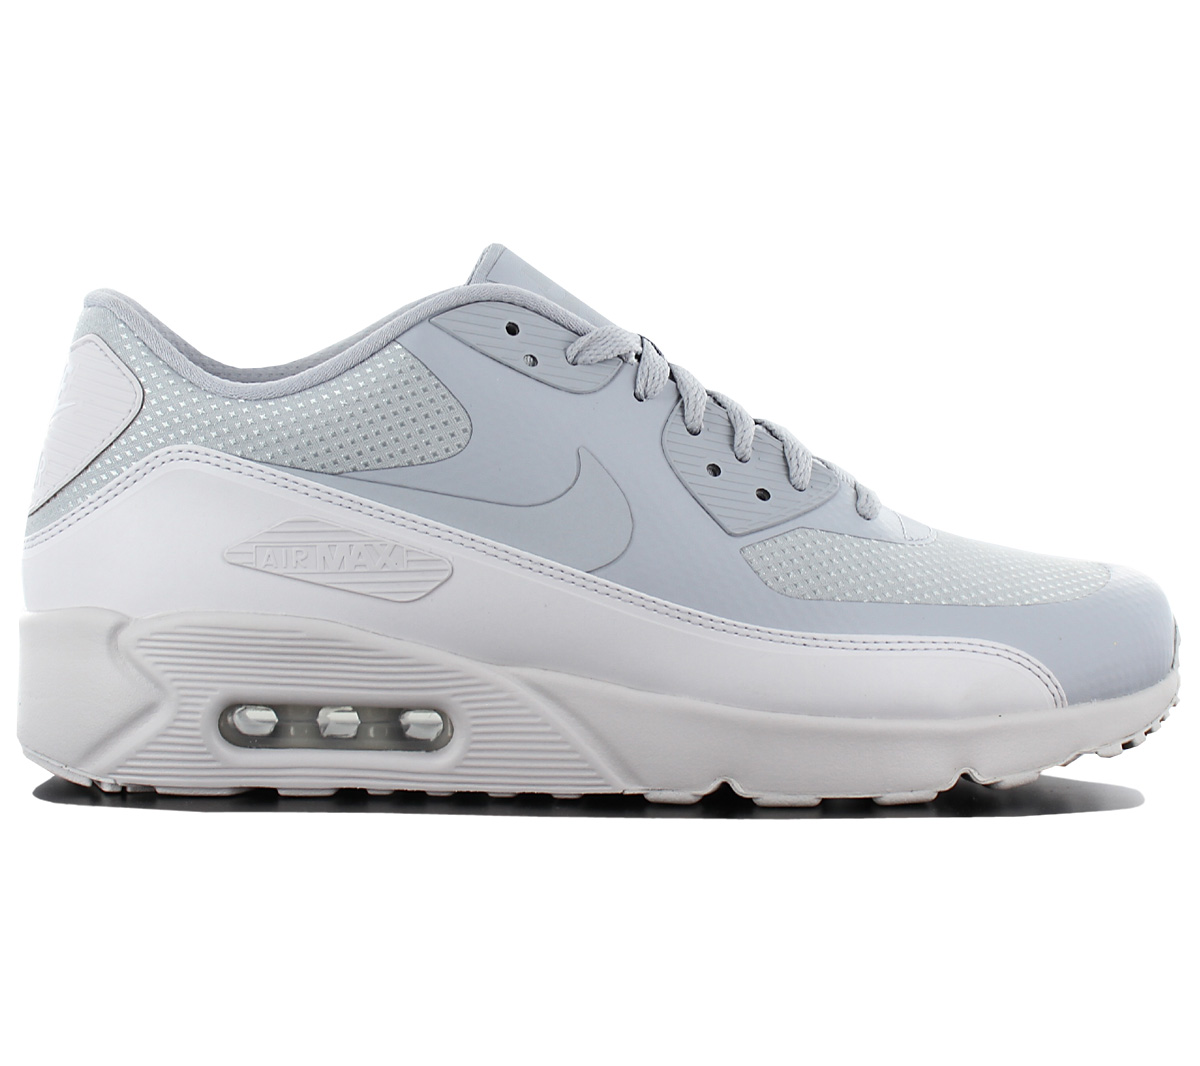 finest selection a5f76 a5b2a Details about Nike Air Max 90 Ultra 2.0 Essential Shoes Grey 875695-017 New